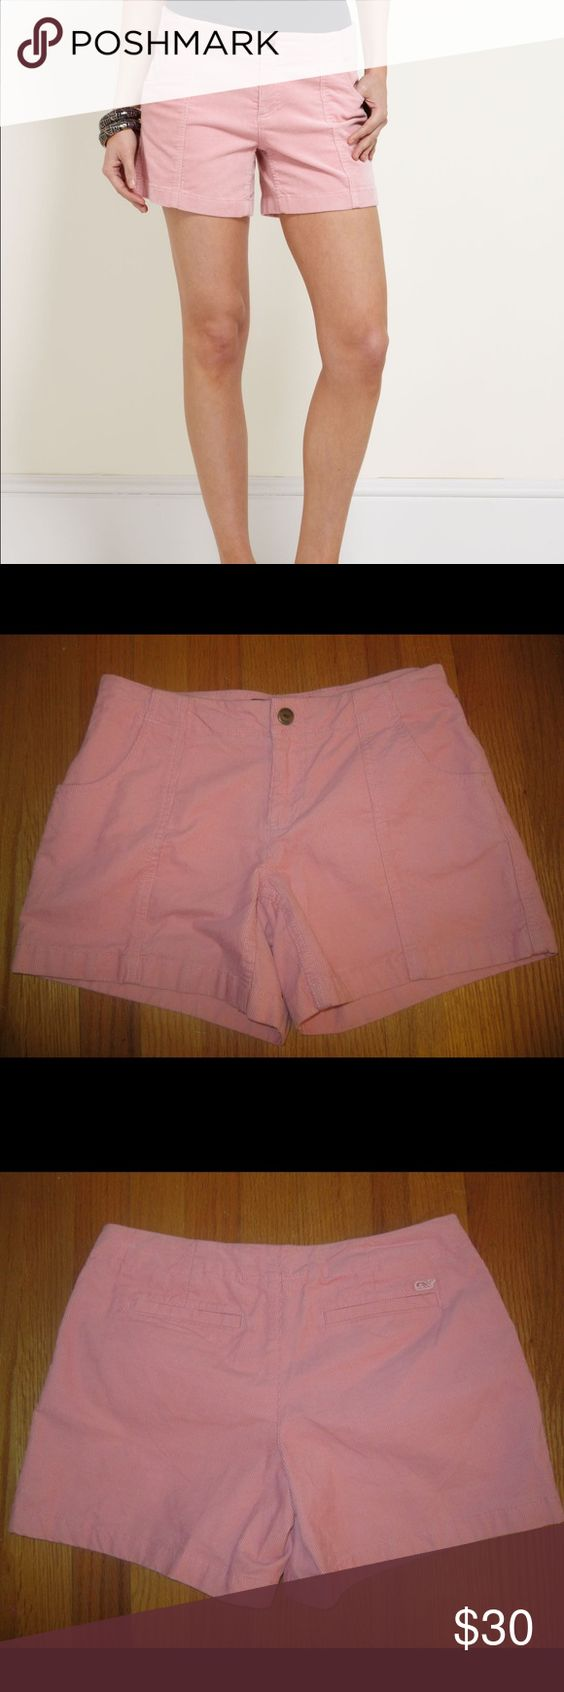 Vineyard Vines Pink Cord Corduroy Shorts Size: 2. Waist: Approximately 27 inches. Length: Approximately 12 inches. Inseam: Approximately 5 inches. Rise: Approximately 7 inches. Metal logo snap on front closure. Embroidered whale on back welt pocket. Zipper and button closure. NO belt loops. Unlined. 98% cotton, 2% spandex. Inside tag marked to prevent retail return. Vineyard Vines Shorts